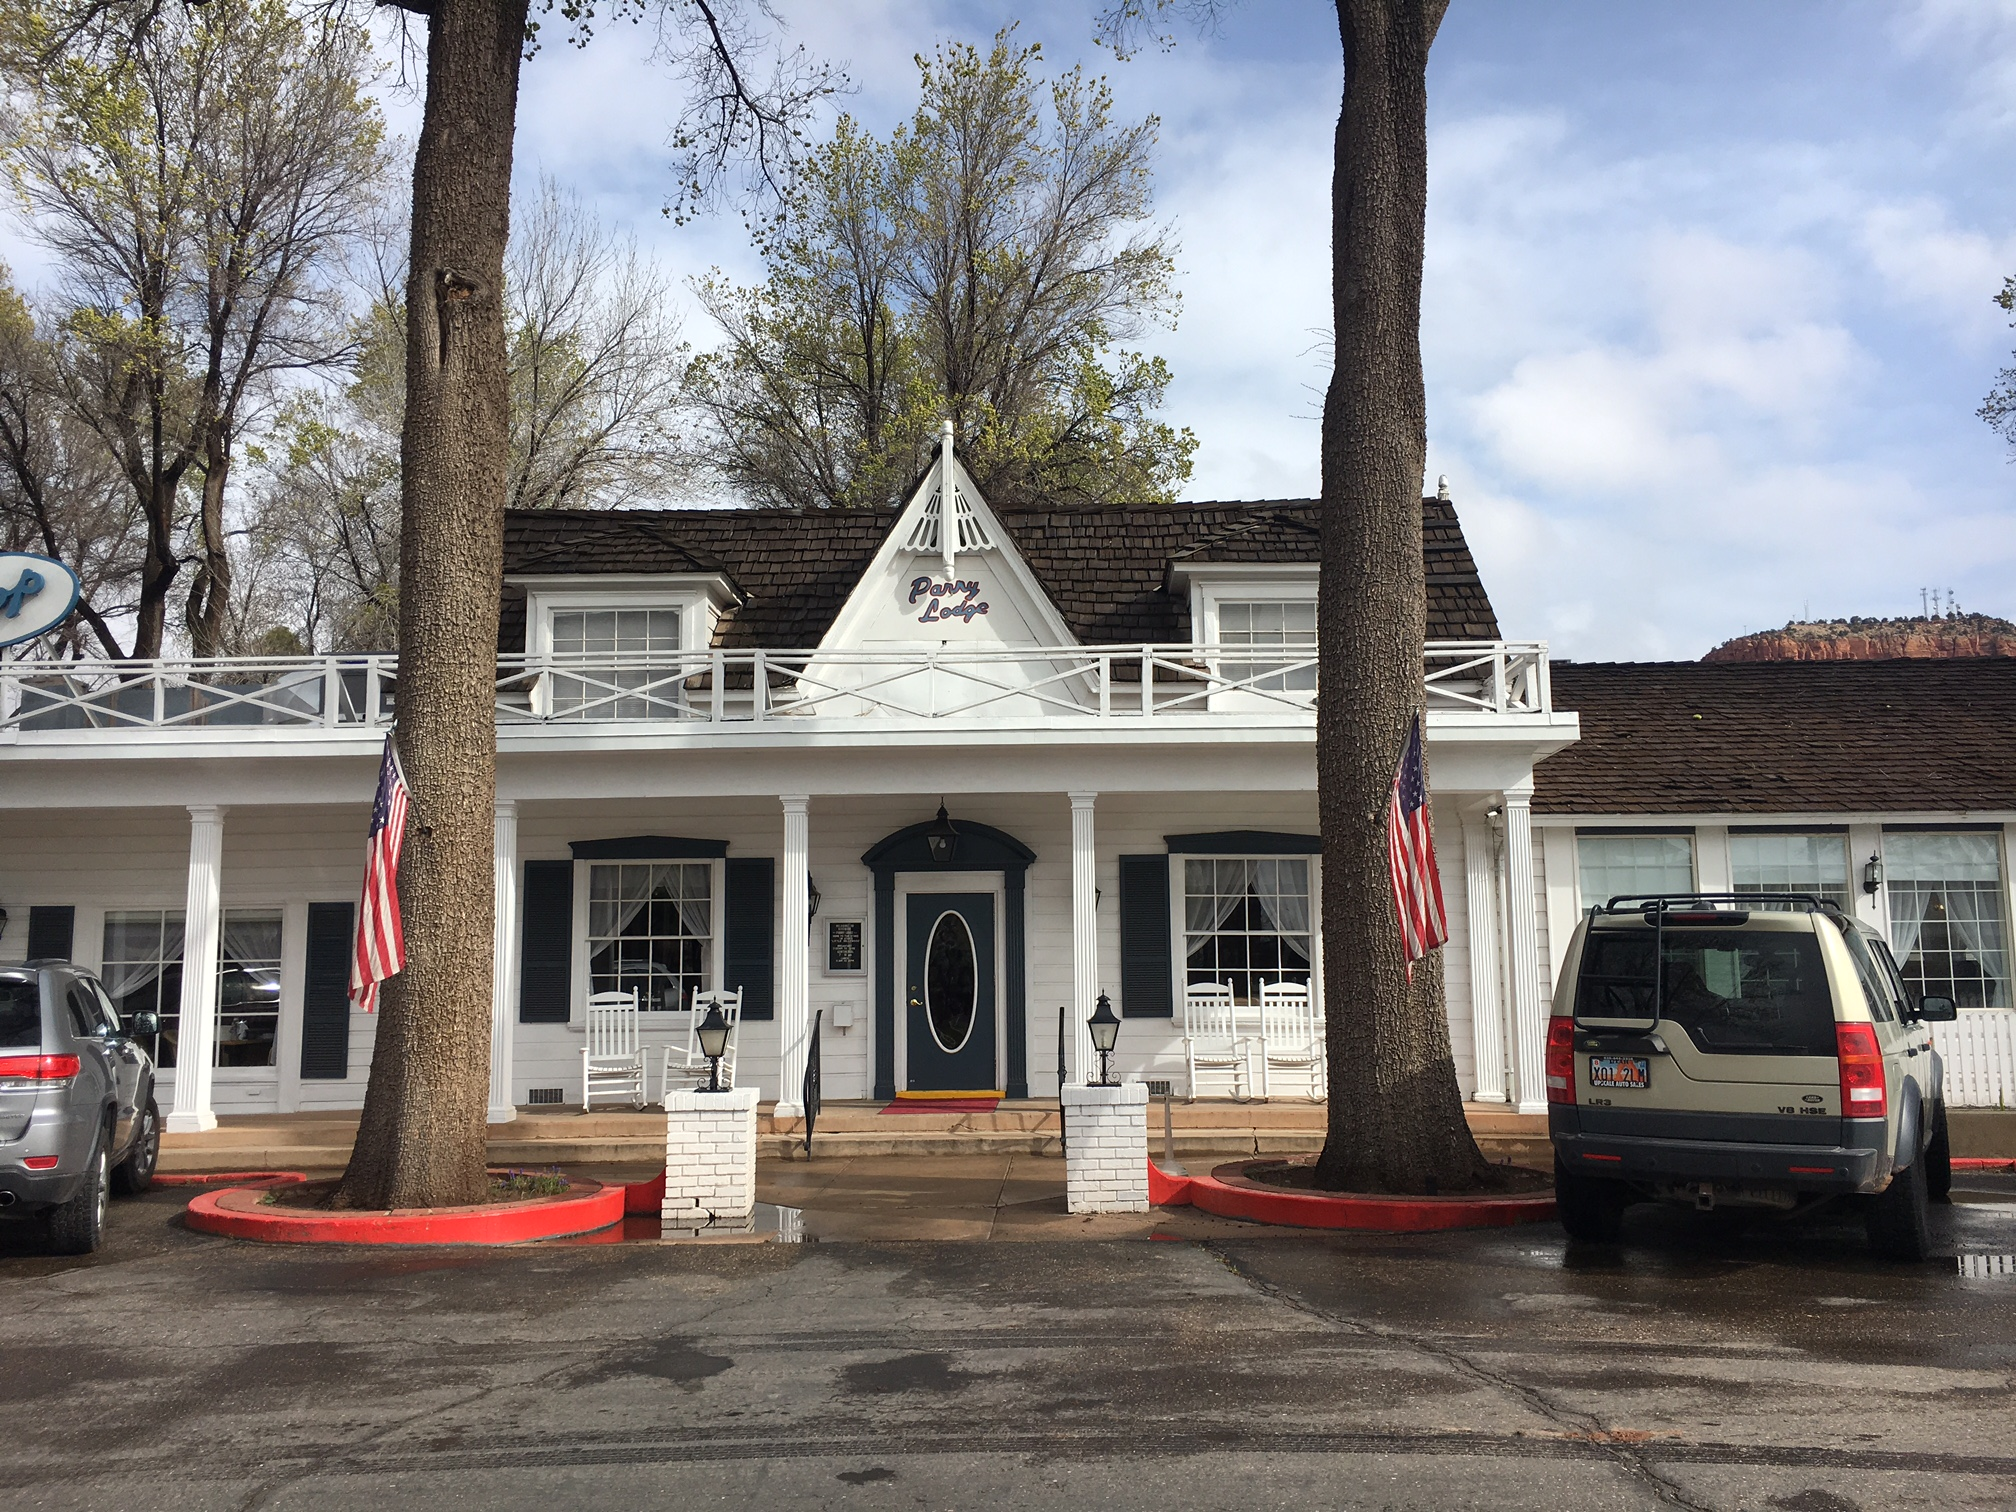 Kia Near Me >> Hotel Review: Parry Lodge, Kanab, Utah - Nancy D Brown